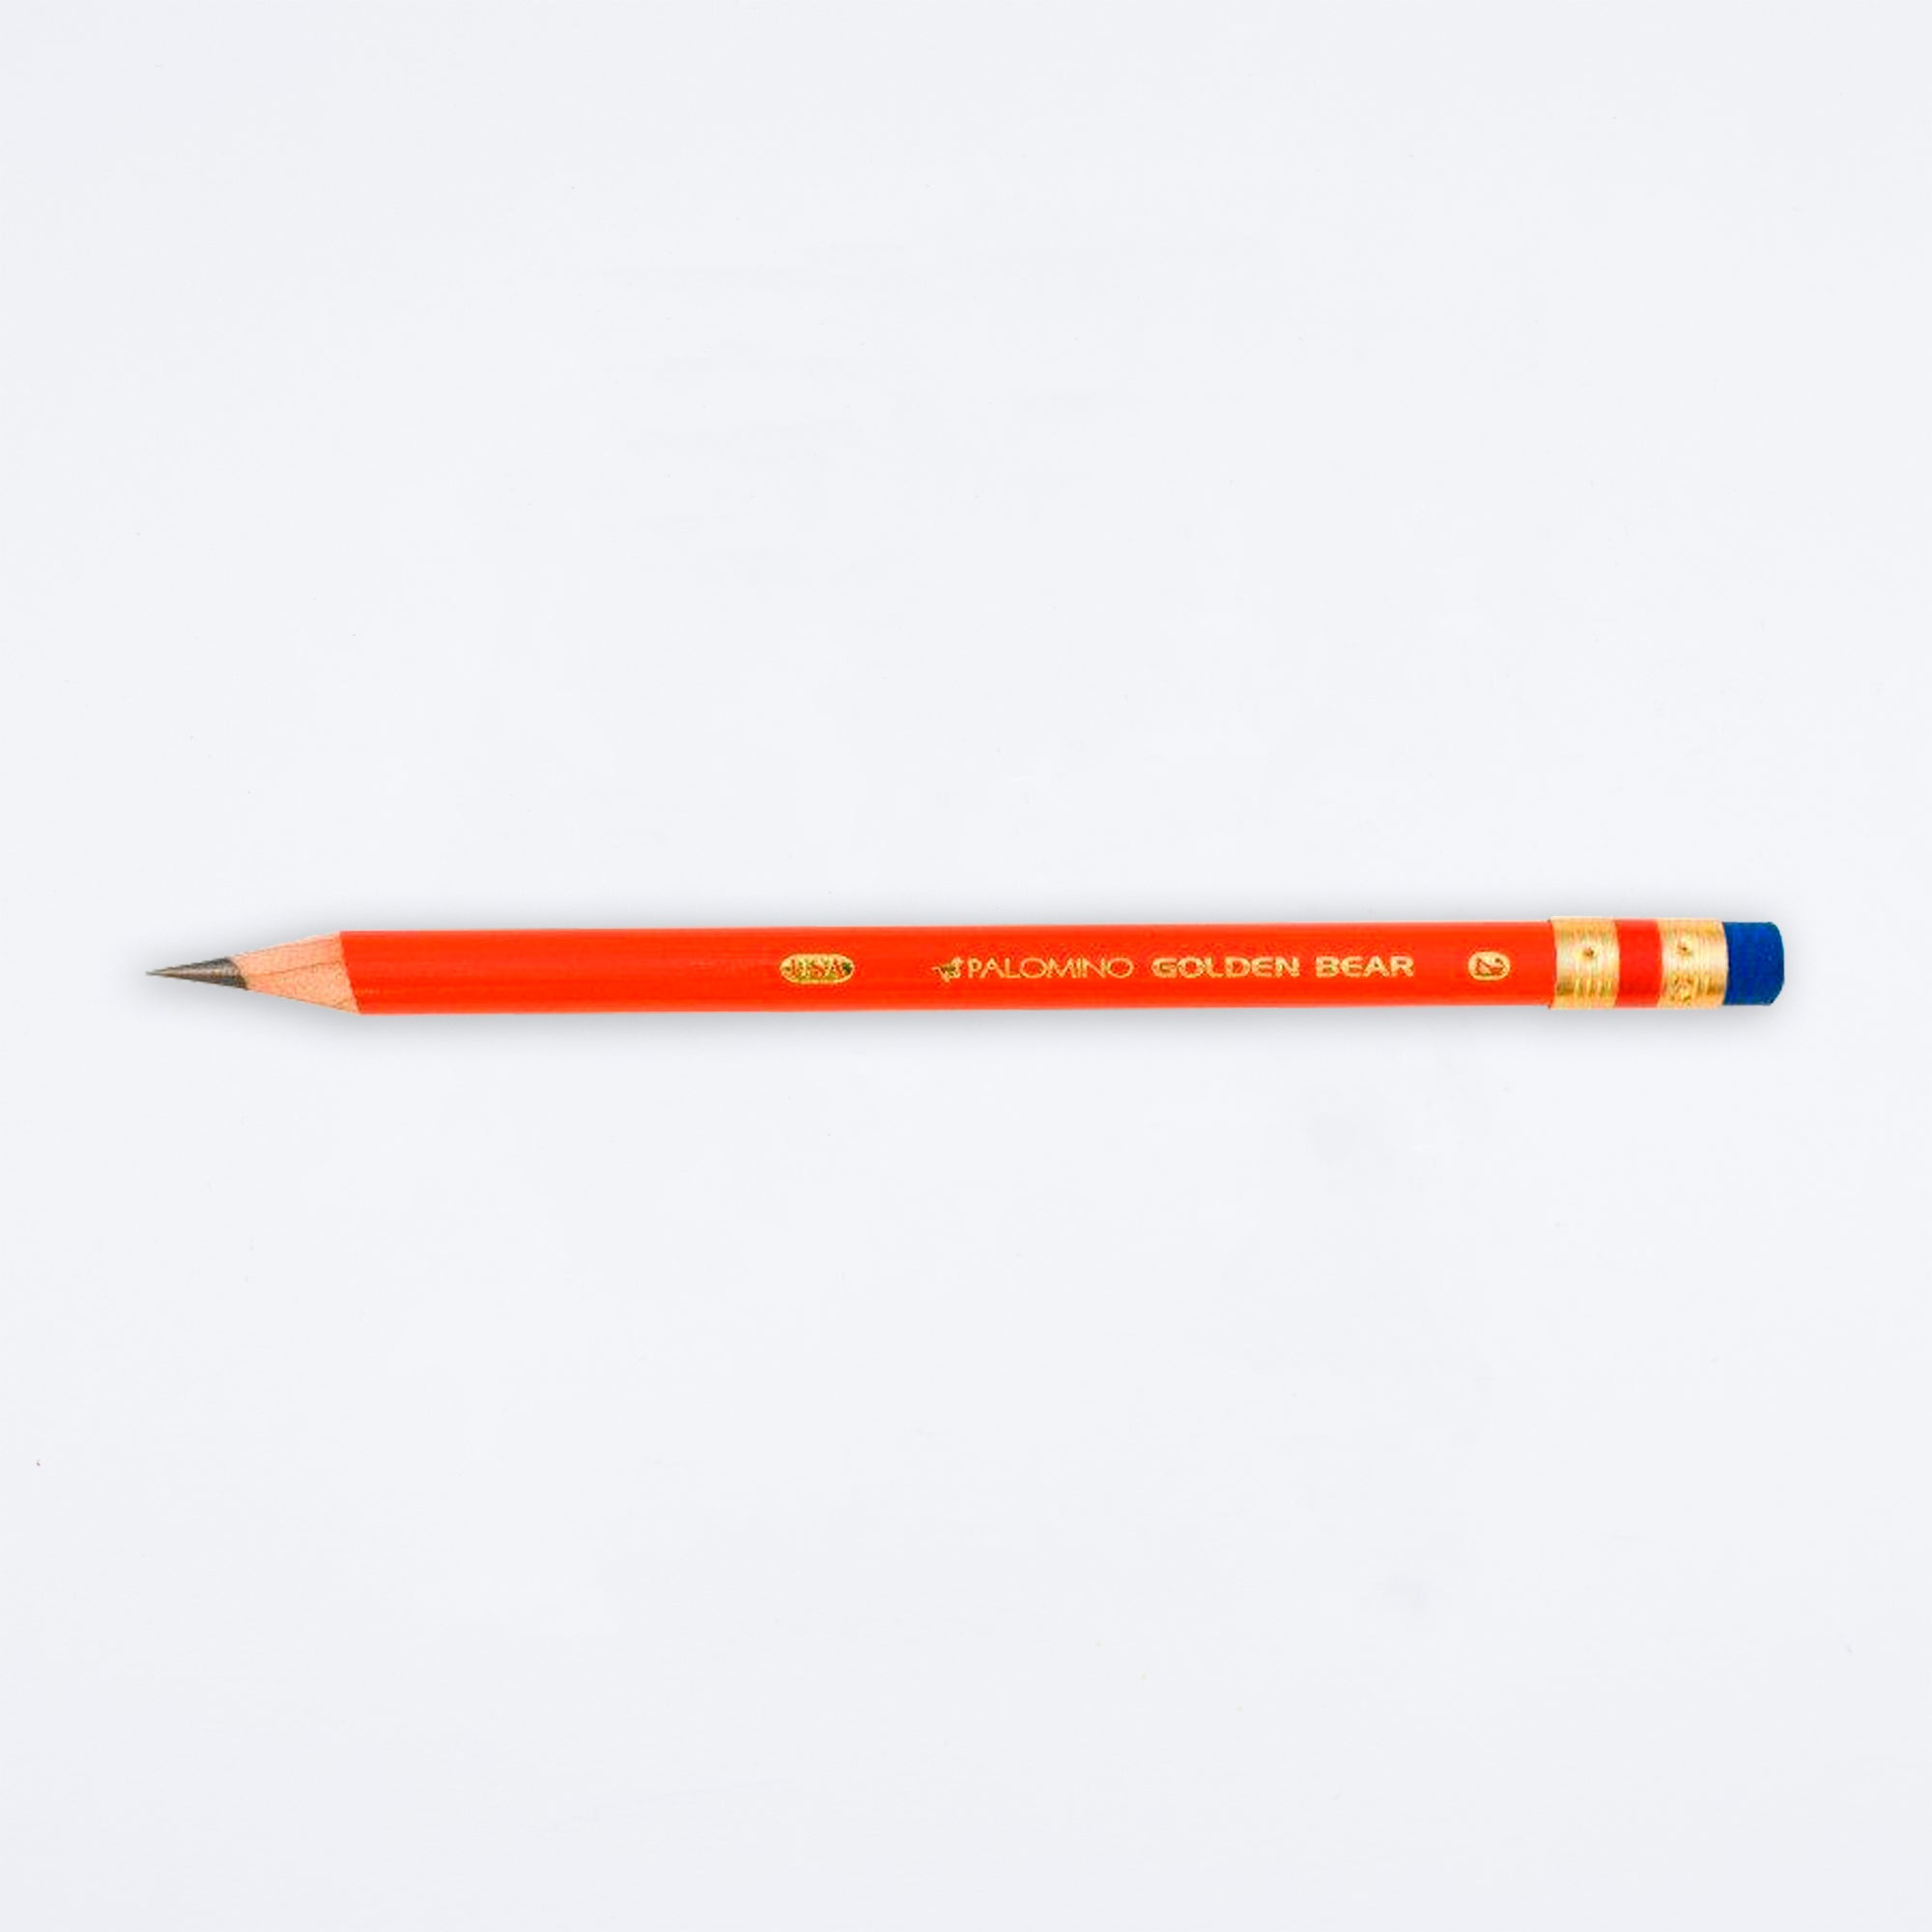 Golden Bear Jumbo Pencil